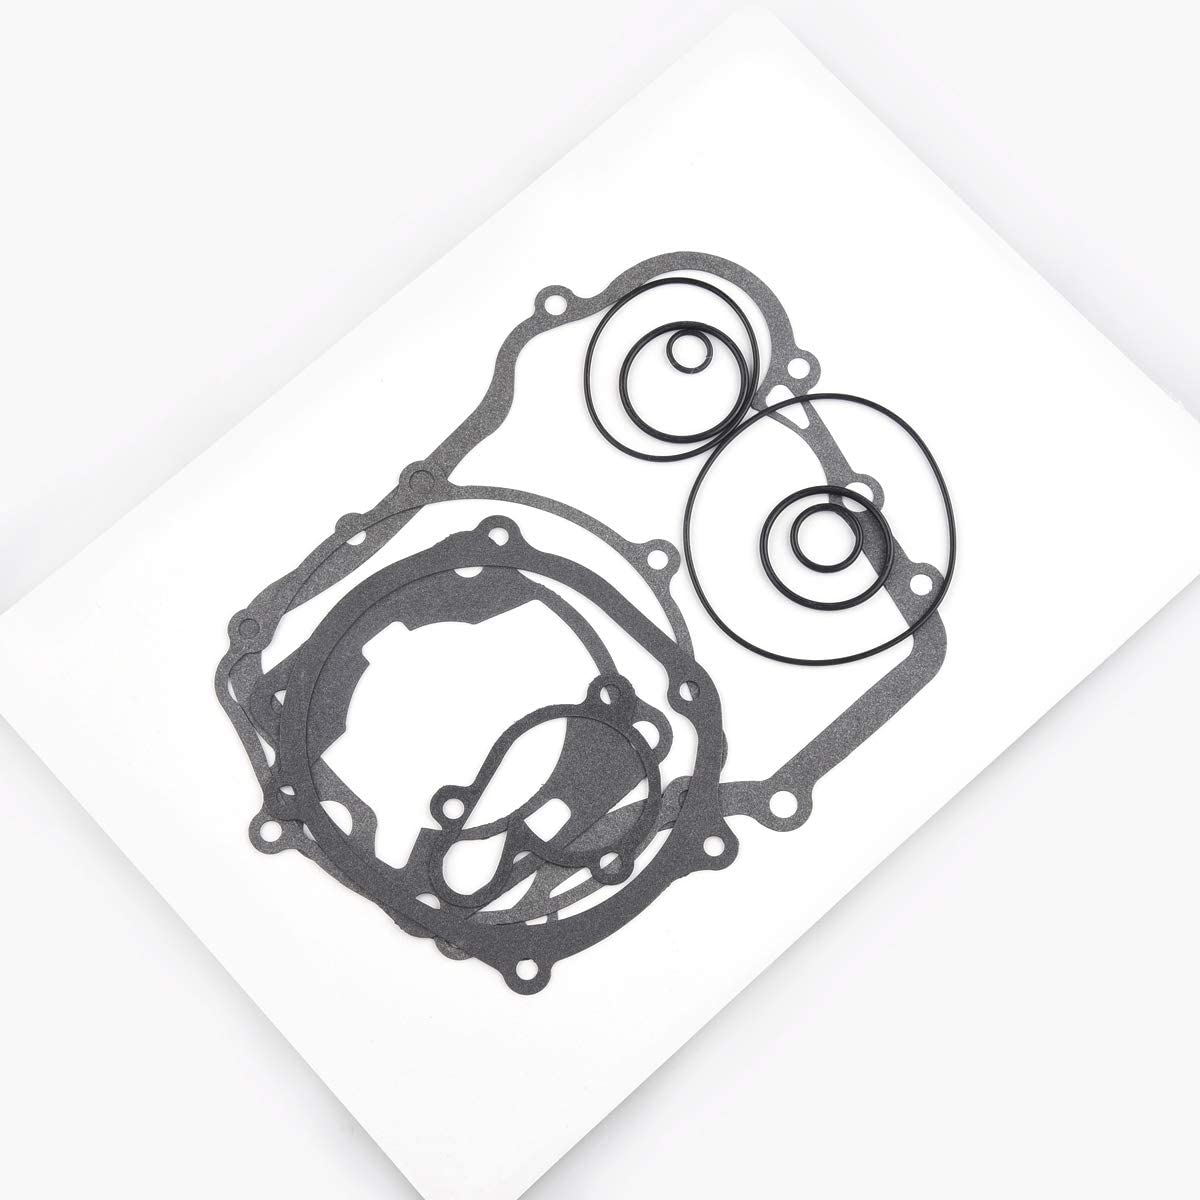 YZ 85 02-17 Complete Engine Gasket Kit Set for YZ 80 93-02